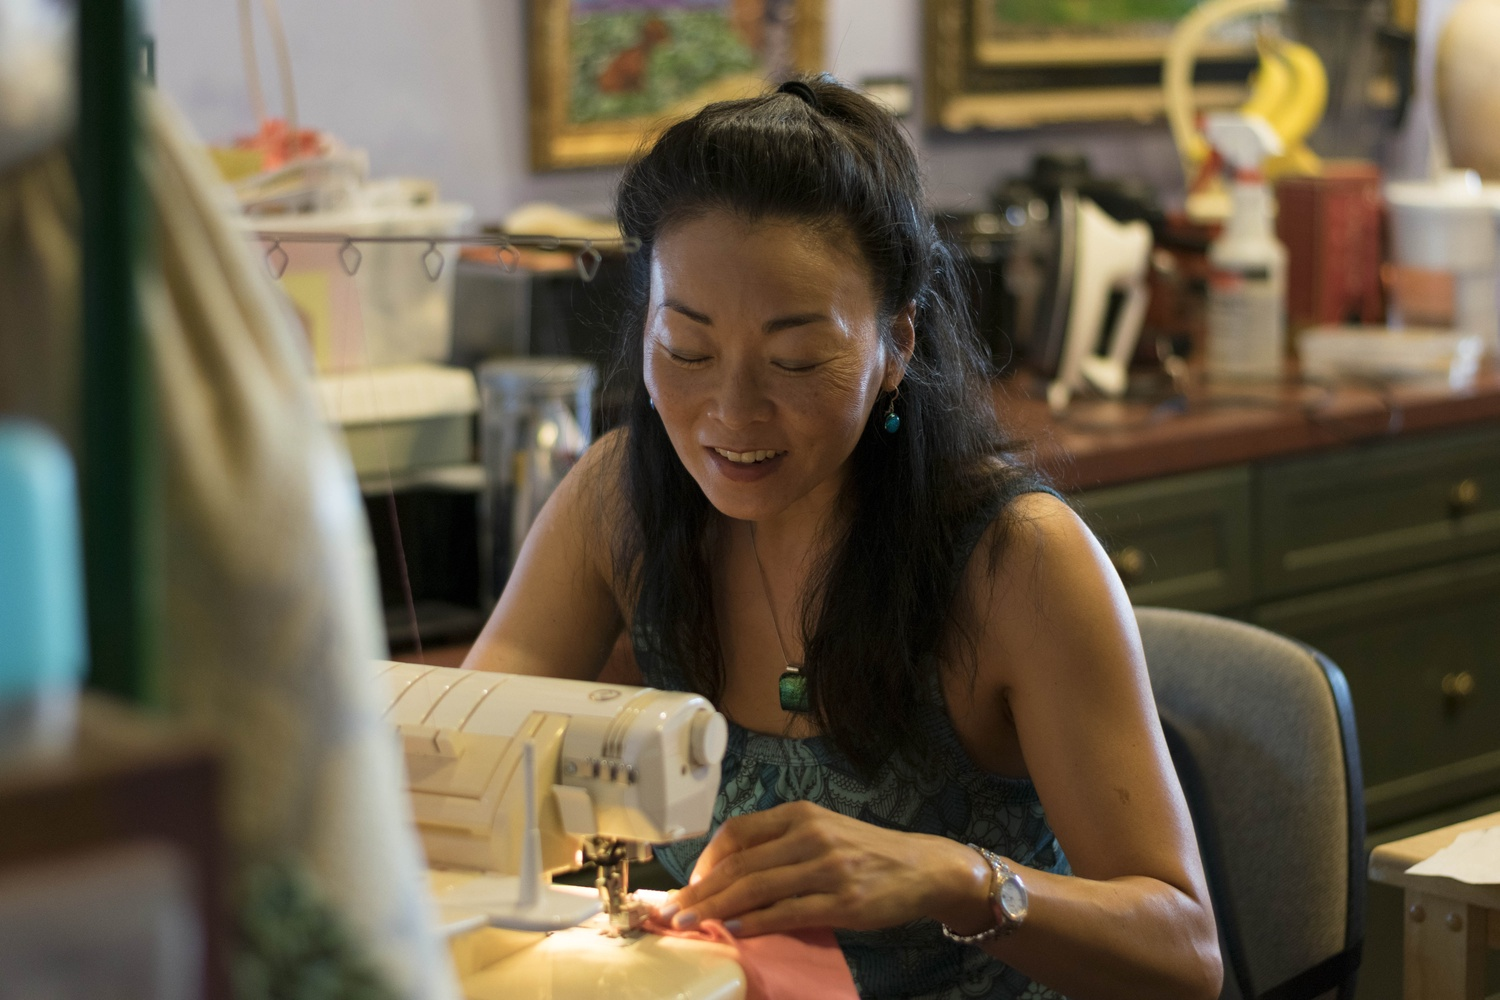 Pauline B. Lim '88 enjoys sewing in her free time.